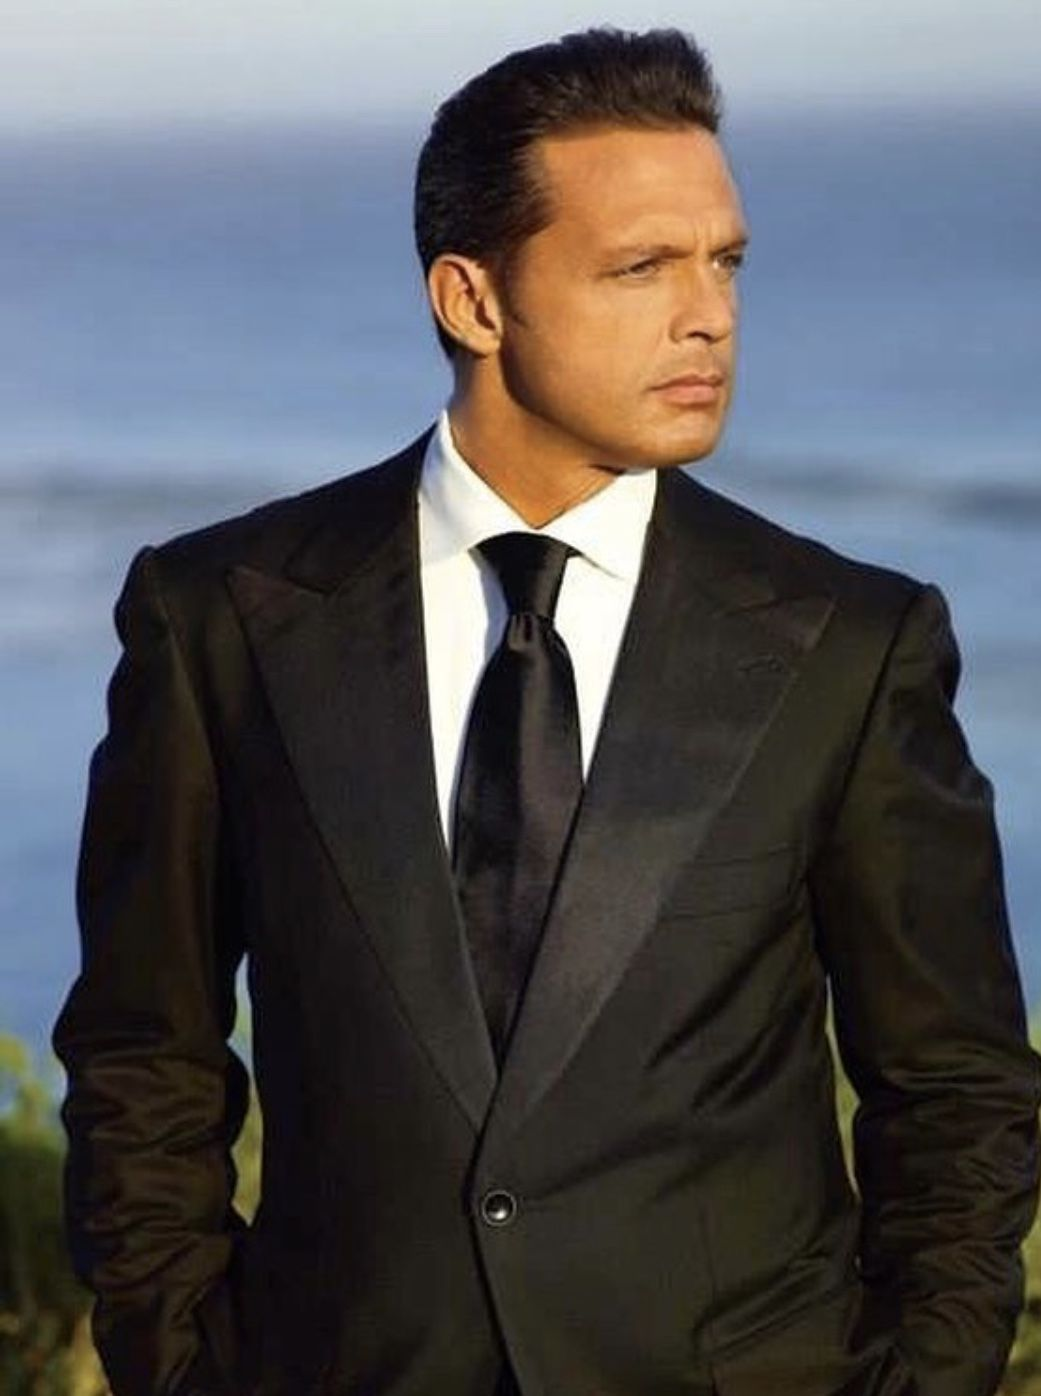 Pin By Krystal On Luis Miguel Luís Miguel Fashion Suit Jacket